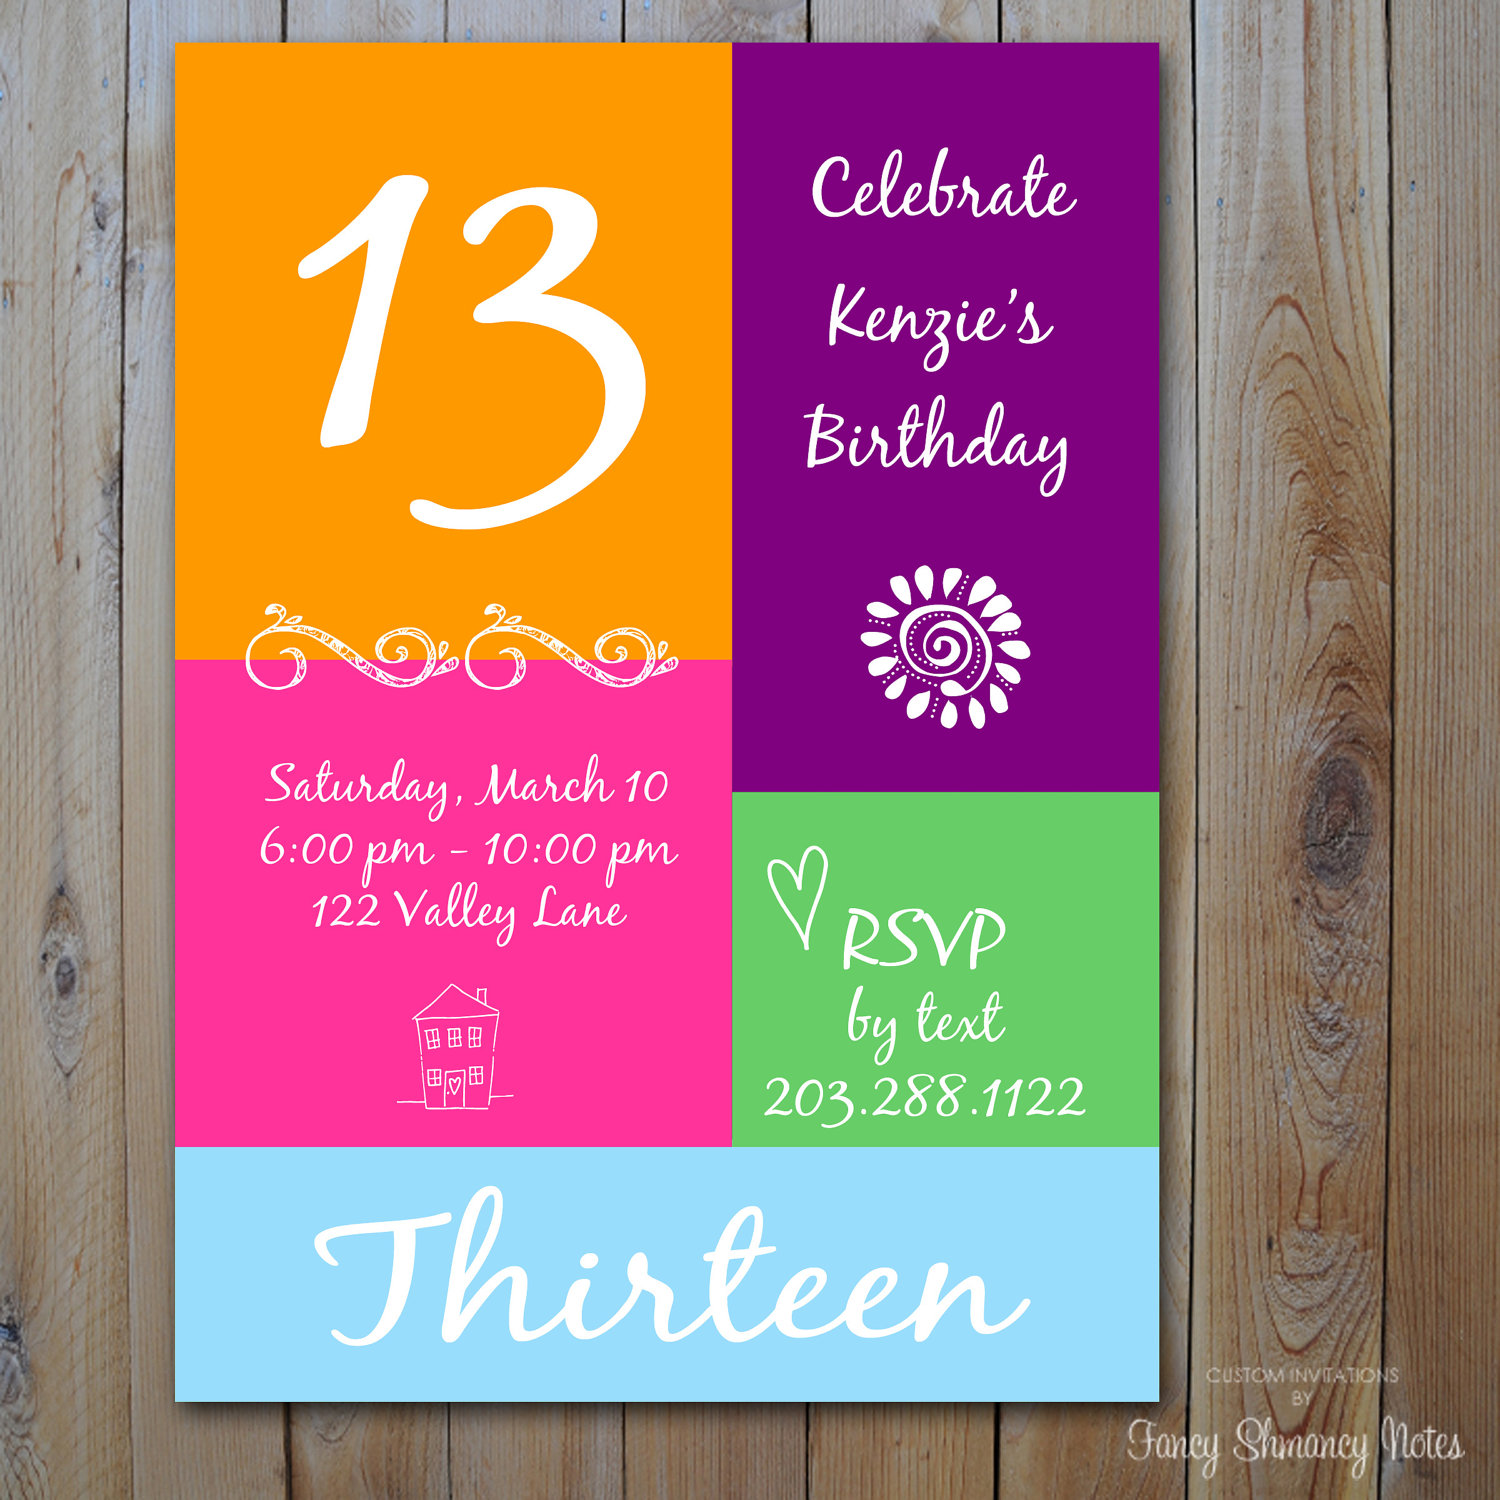 free clipart for birthday invitations ; 13-birthday-invitation-clipart-1